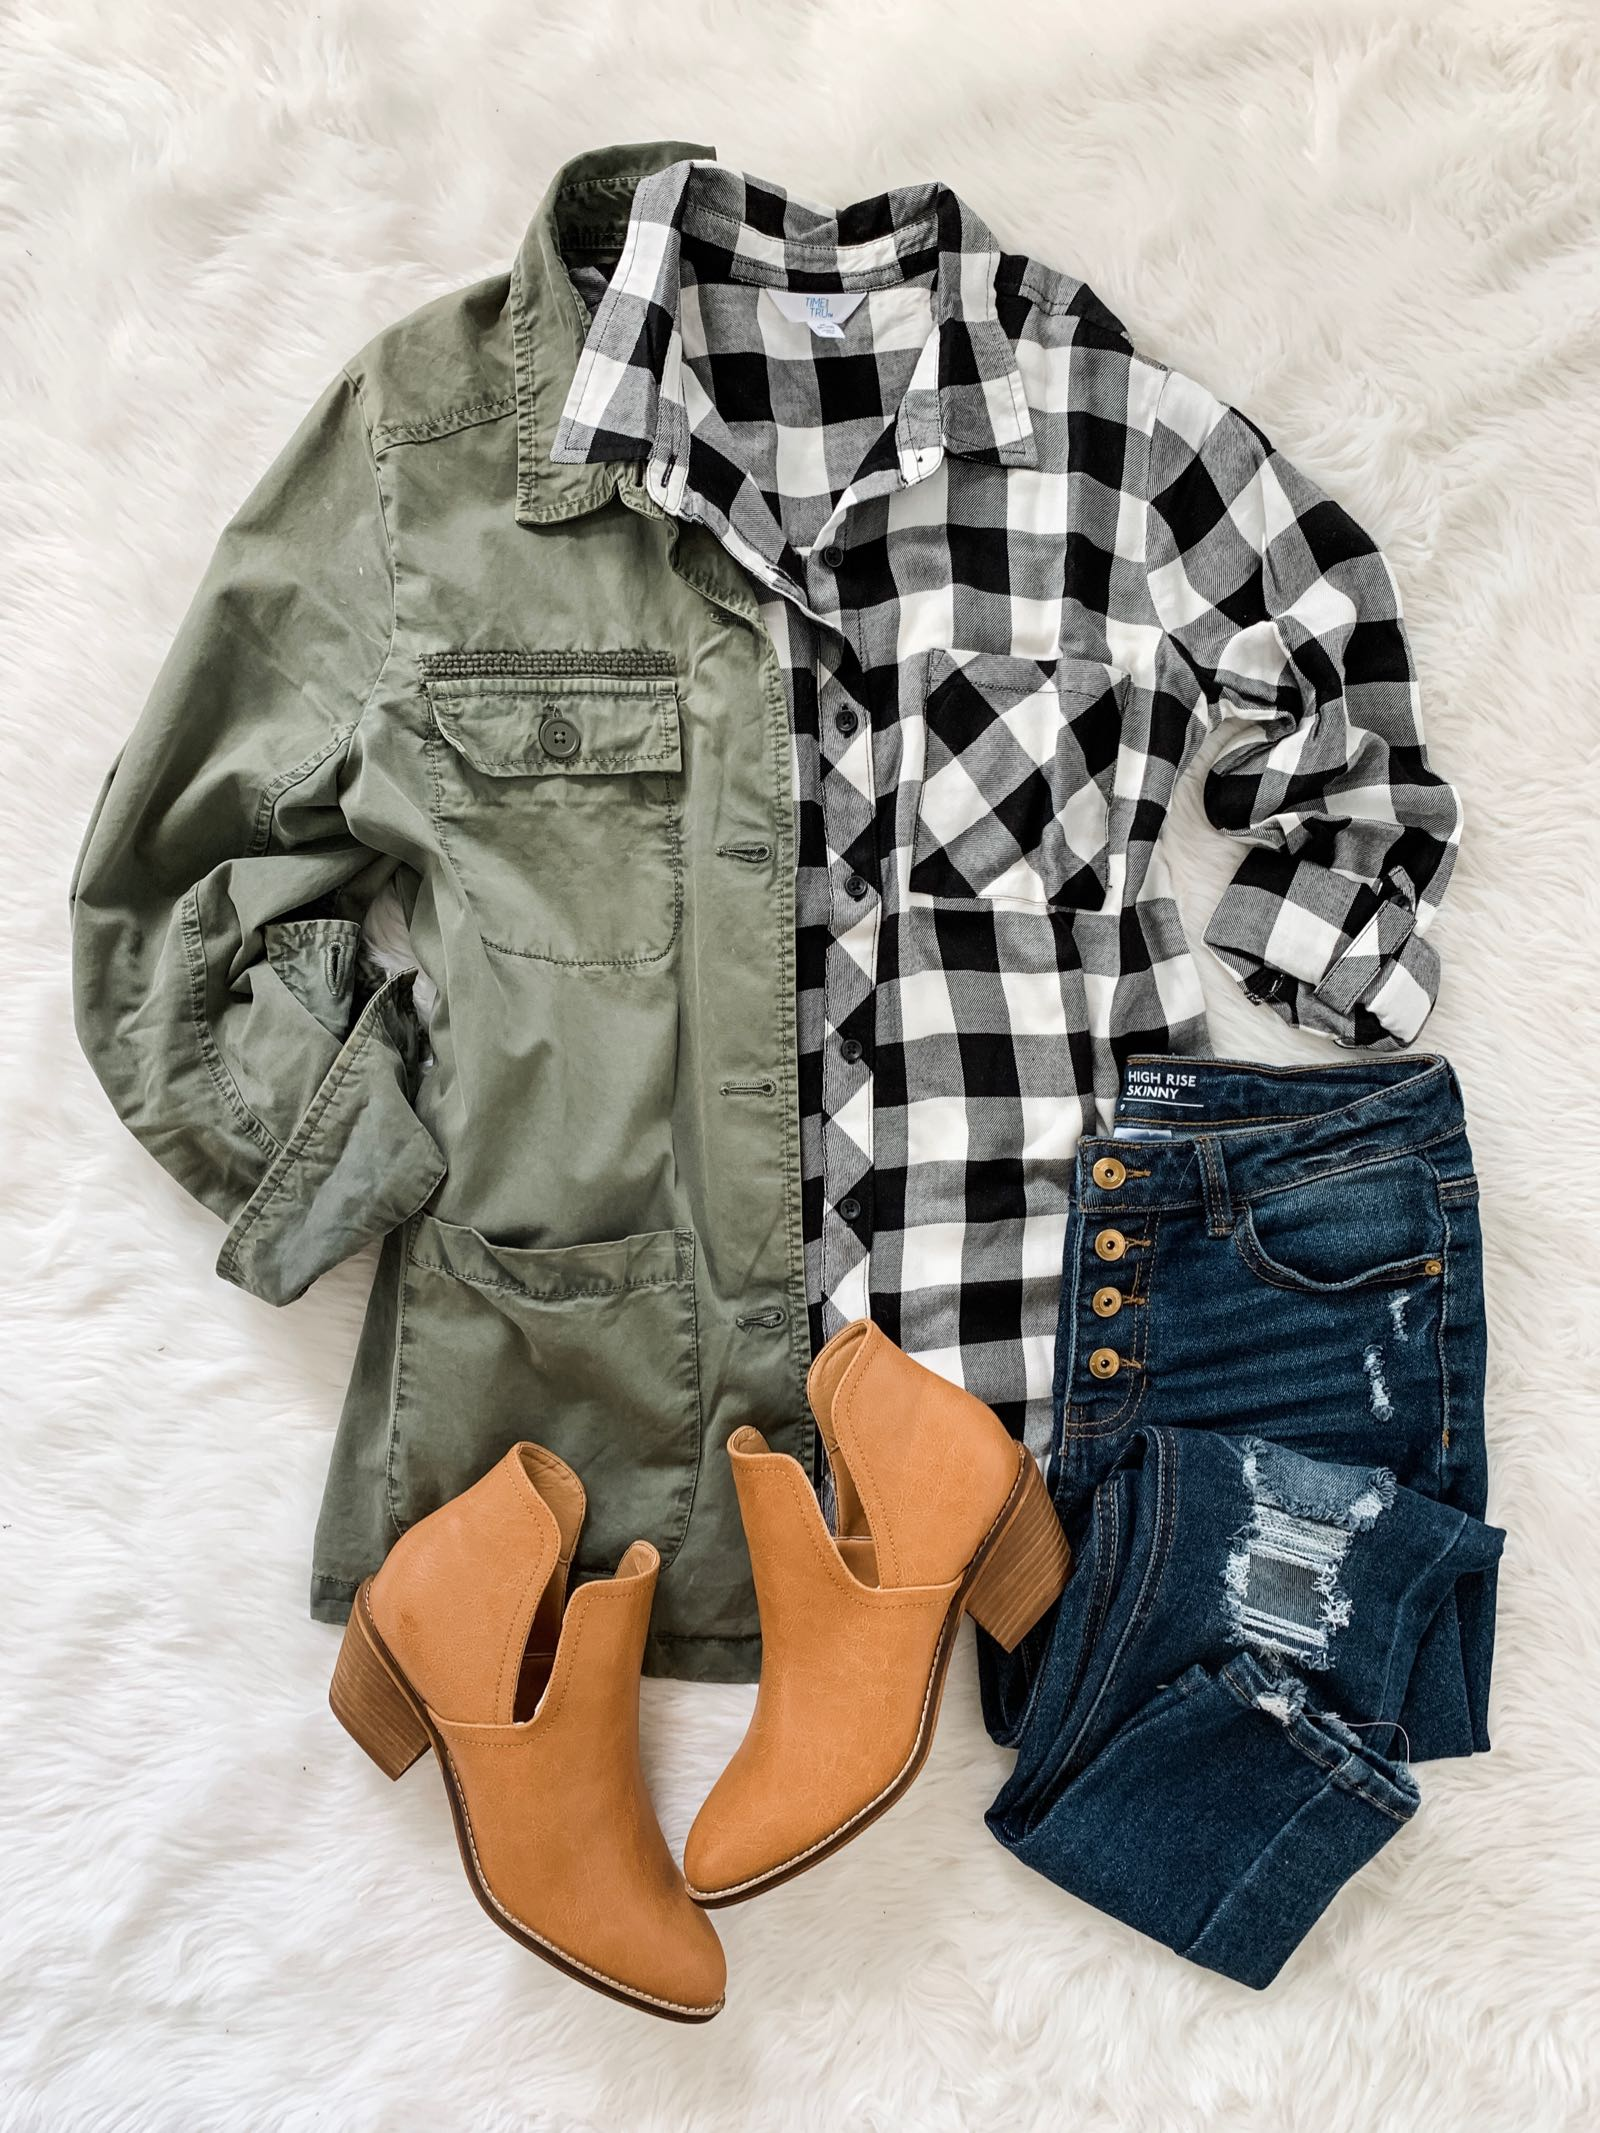 Fall outfit idea with field jacket, buffalo check plaid and ankle booties